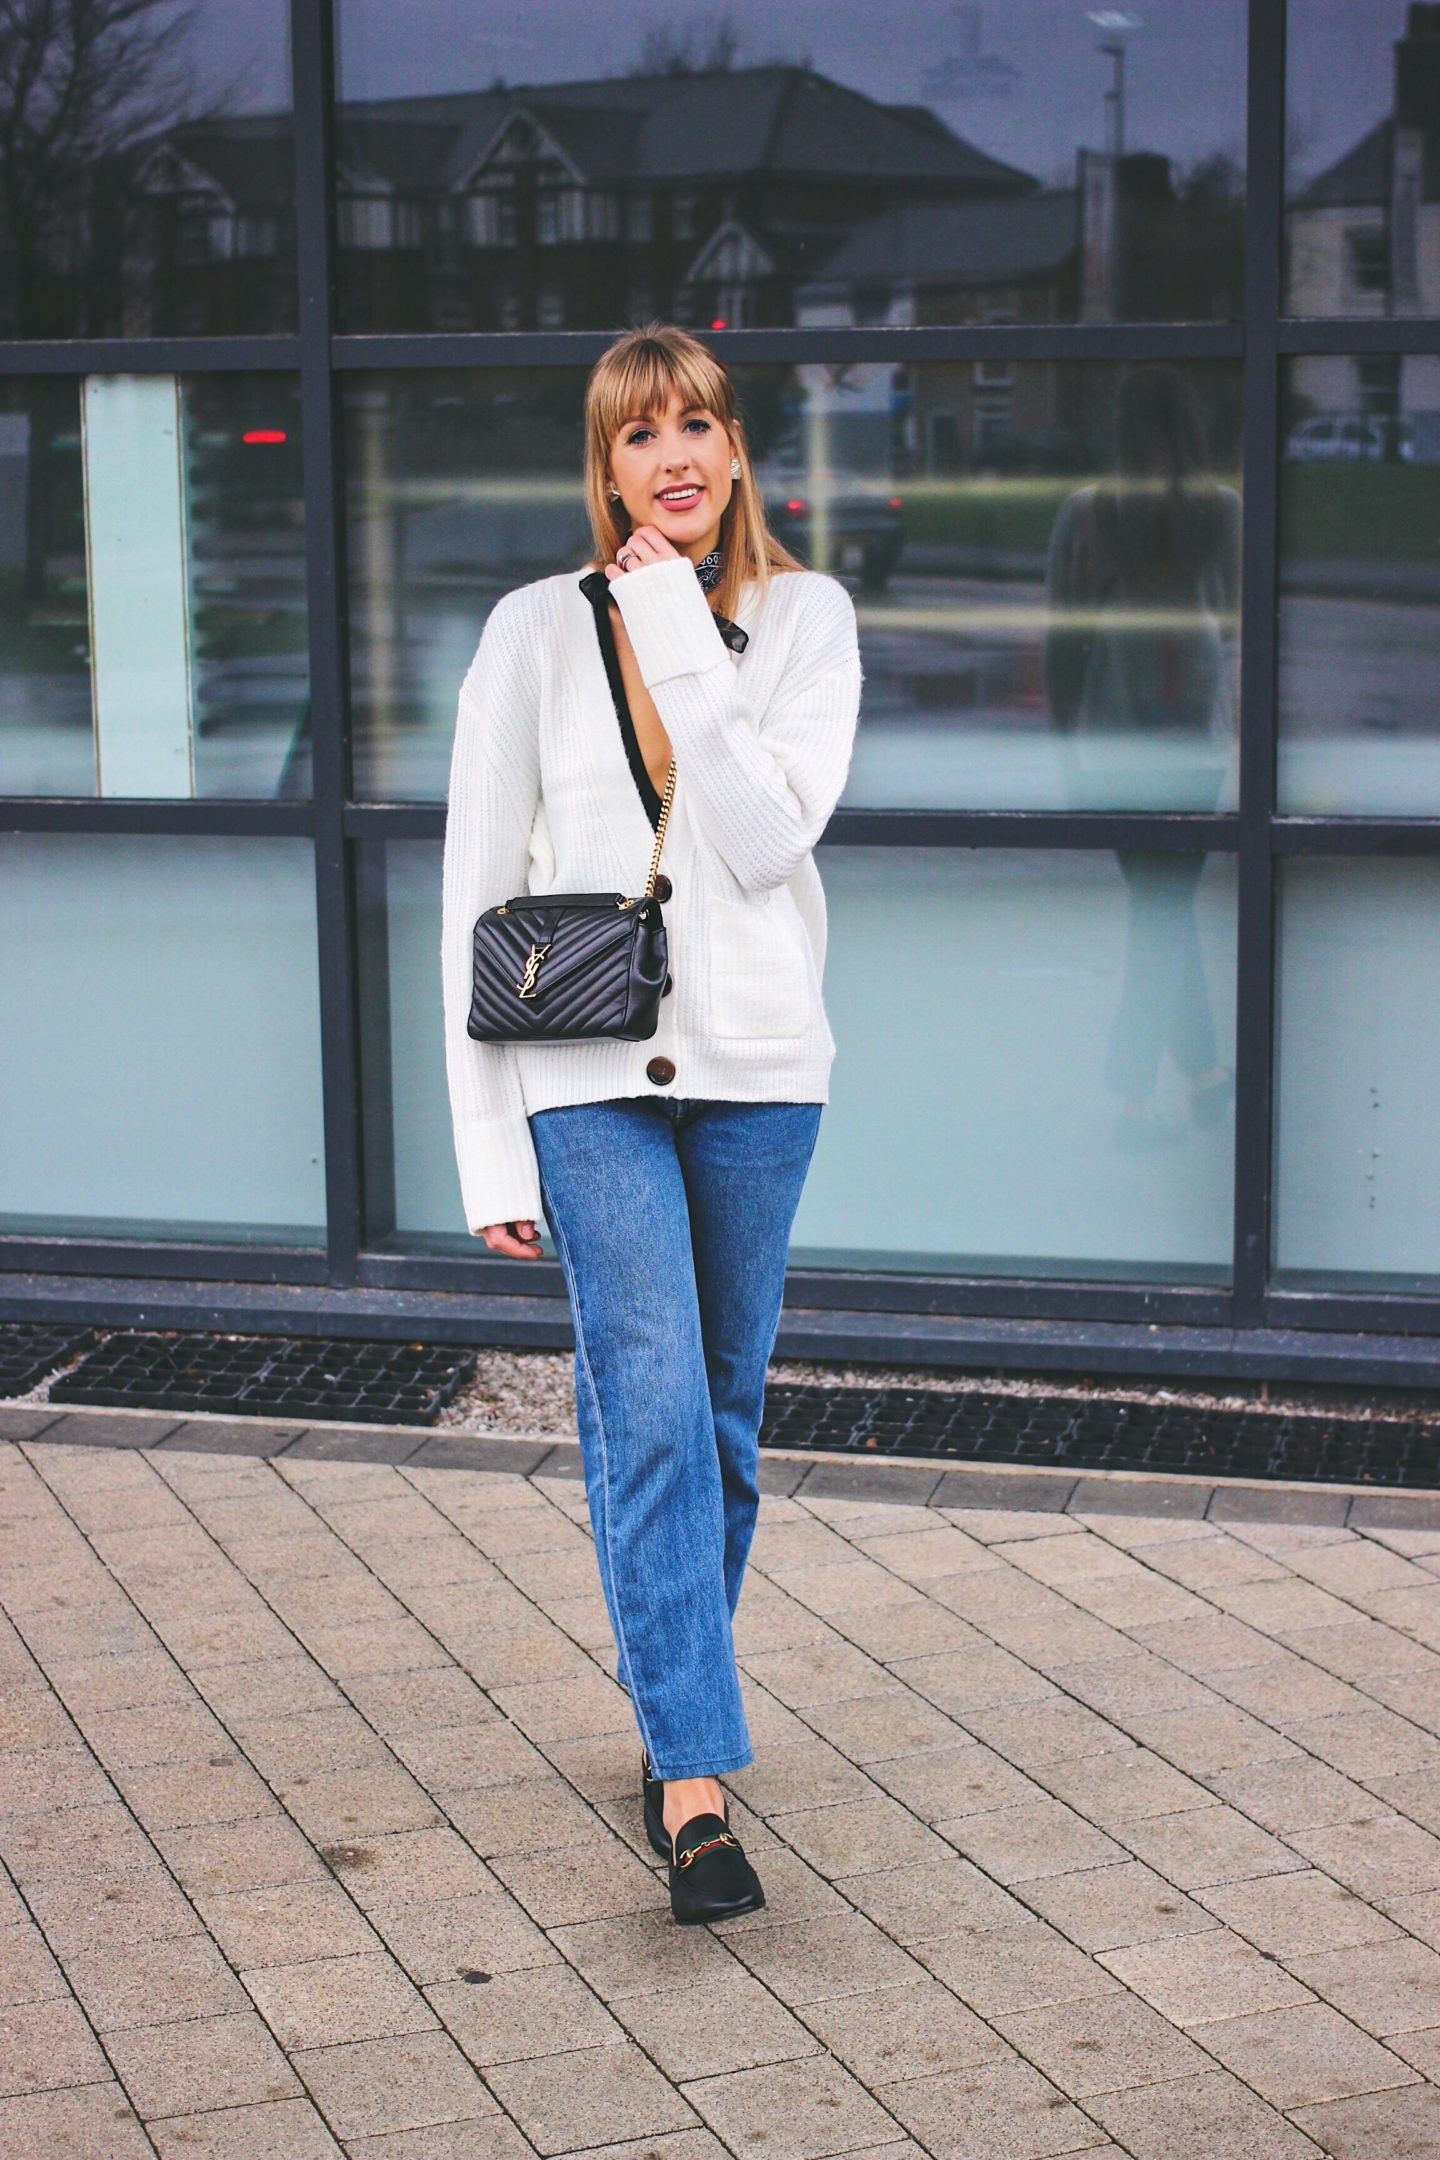 Classic casual chic outfit ideas